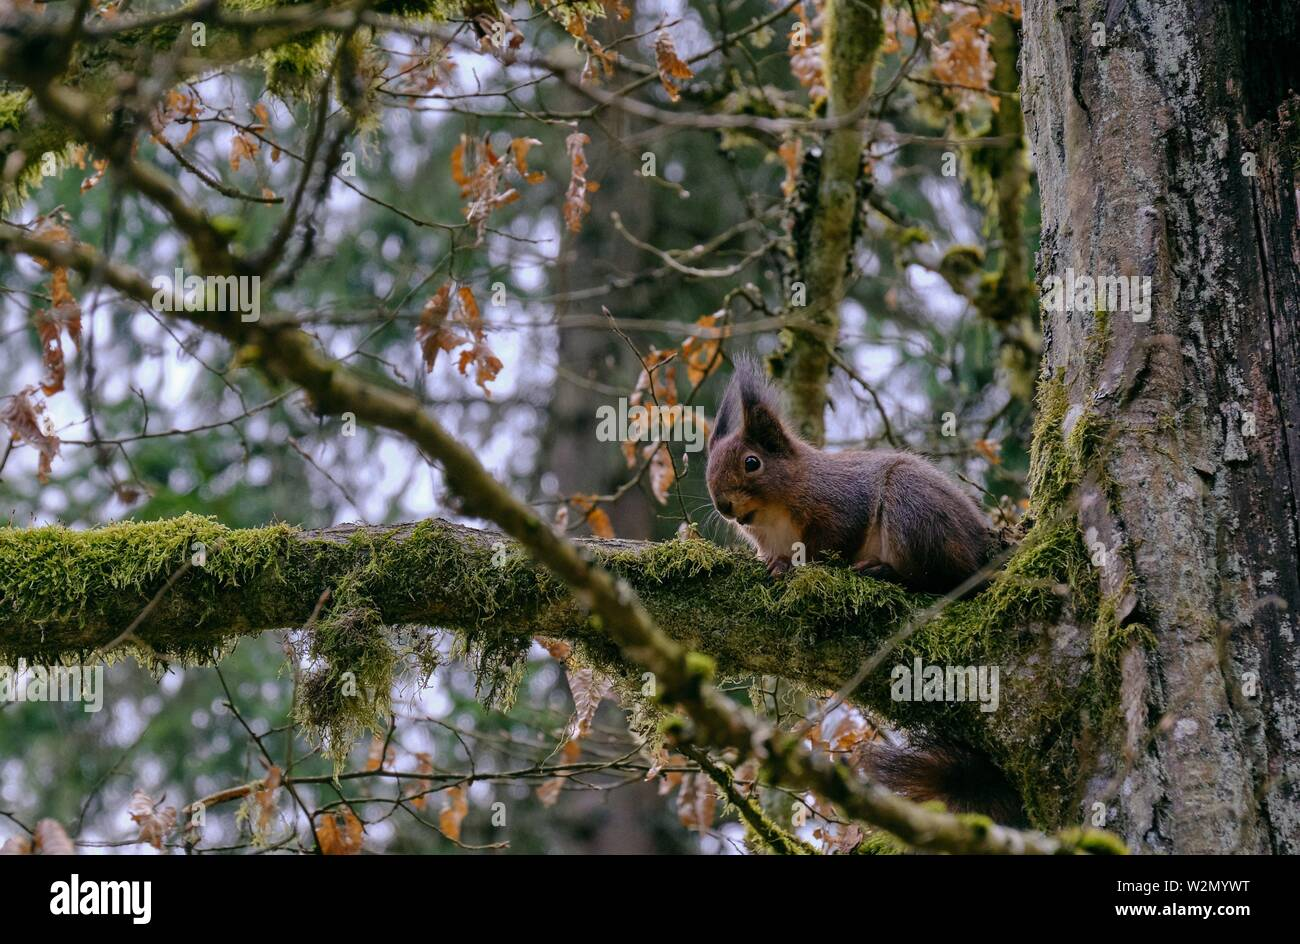 Eurasian Red Squirrel sitting on hornbeam branch in early spring, Bialowieza forest, Poland, Europe. - Stock Image